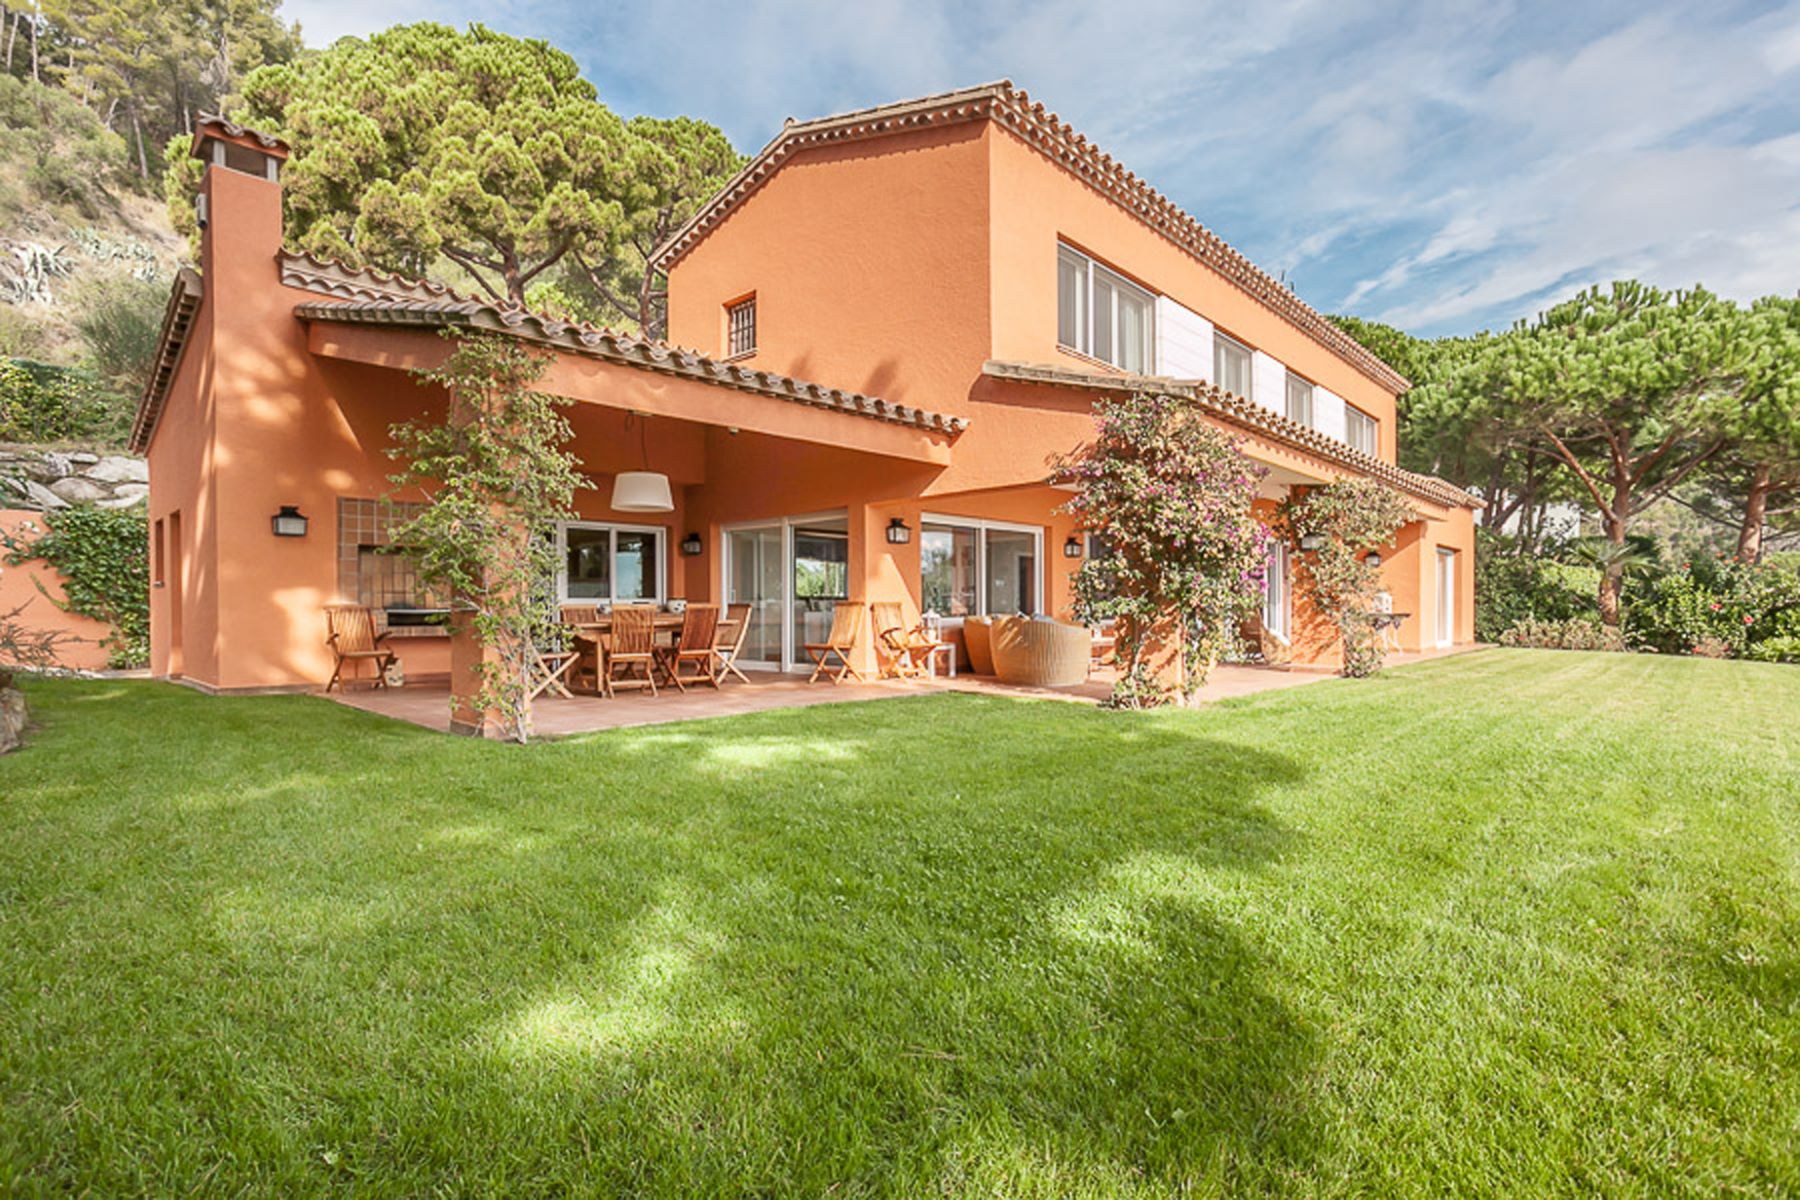 Single Family Home for Sale at Bright villa with sea views in Punta Brava Sant Feliu De Guixols, Costa Brava, 17220 Spain